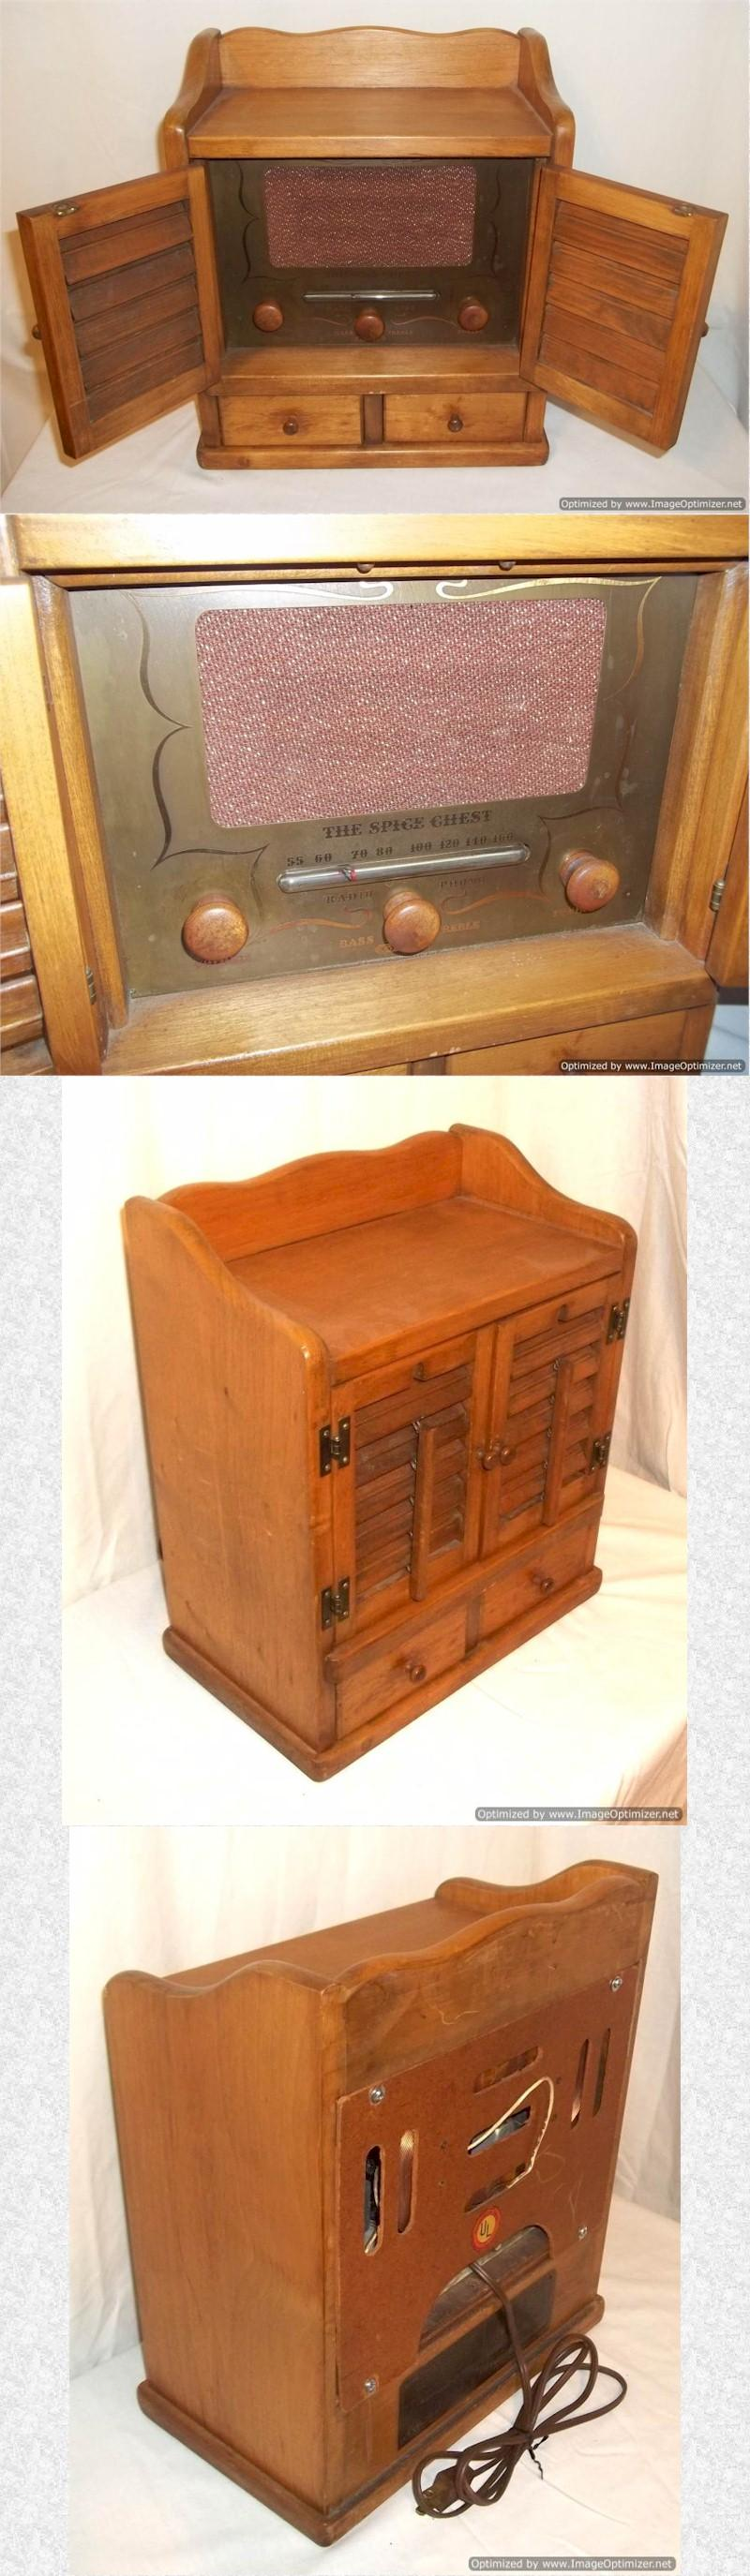 "Guild 484 ""Spice Chest"" (1956)"